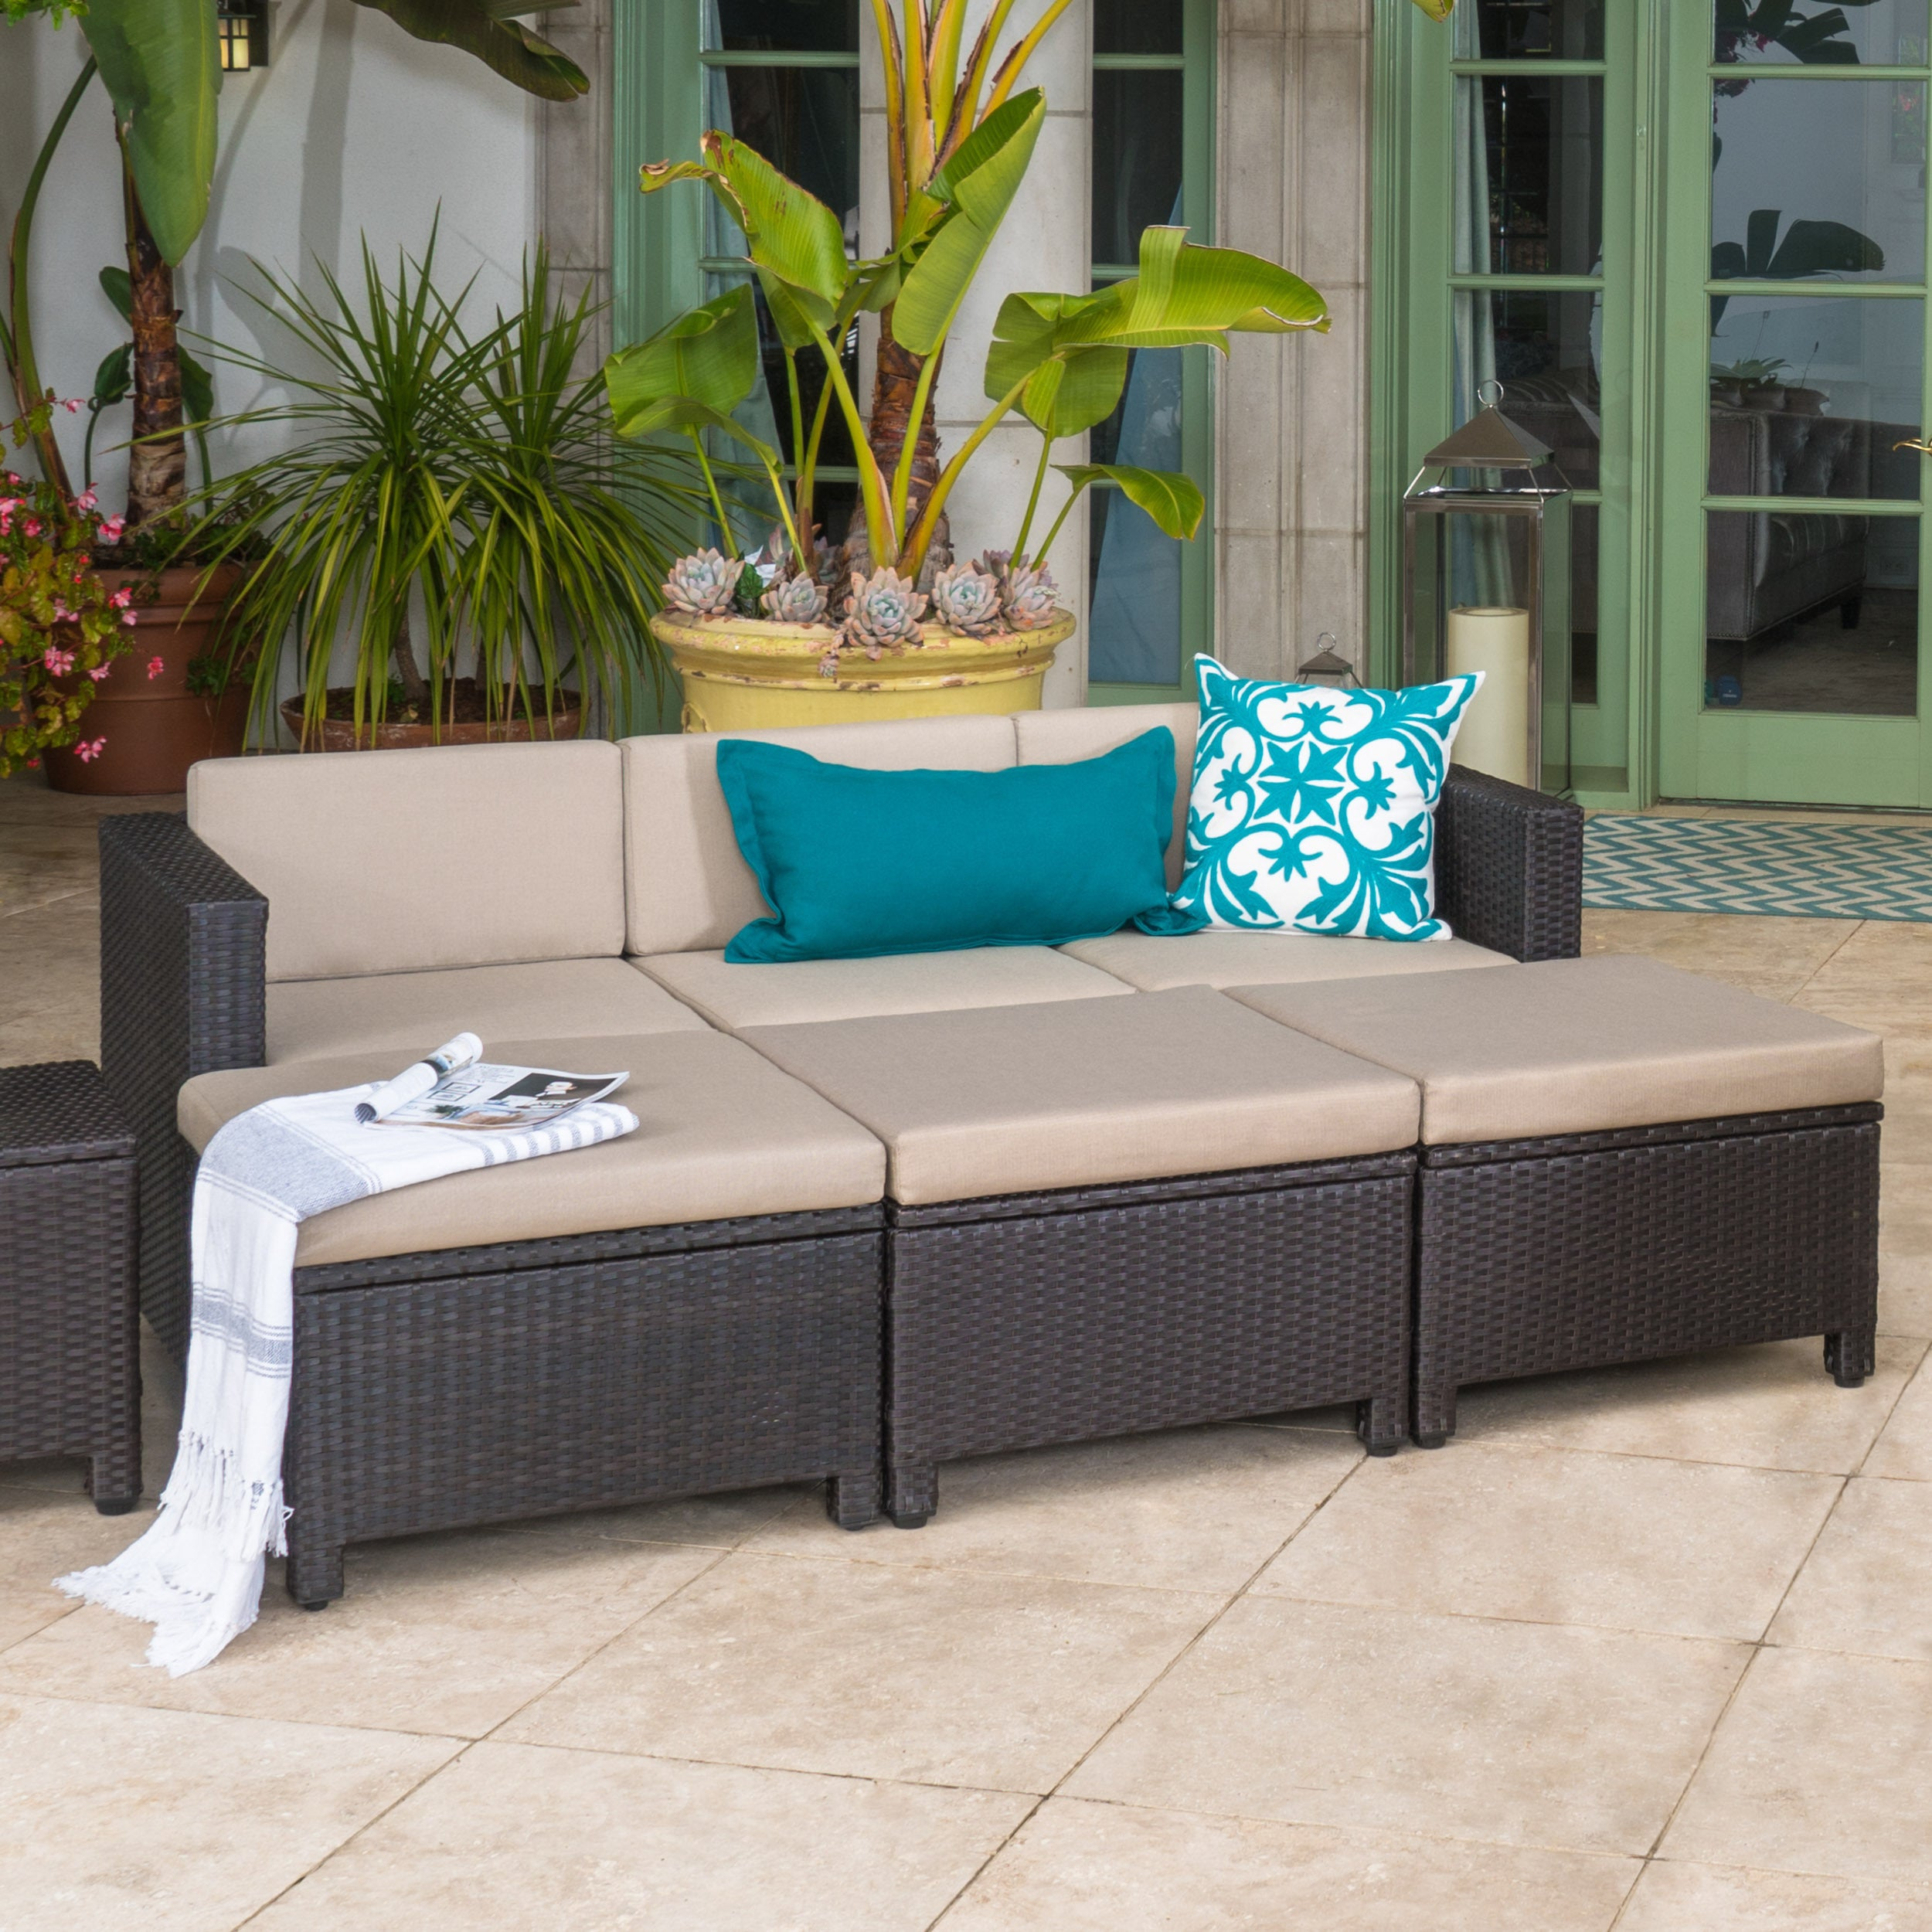 pit living weather sectional conversation hayneedle patio fire set belham cfm inuse wicker product in rendezvous daybed all